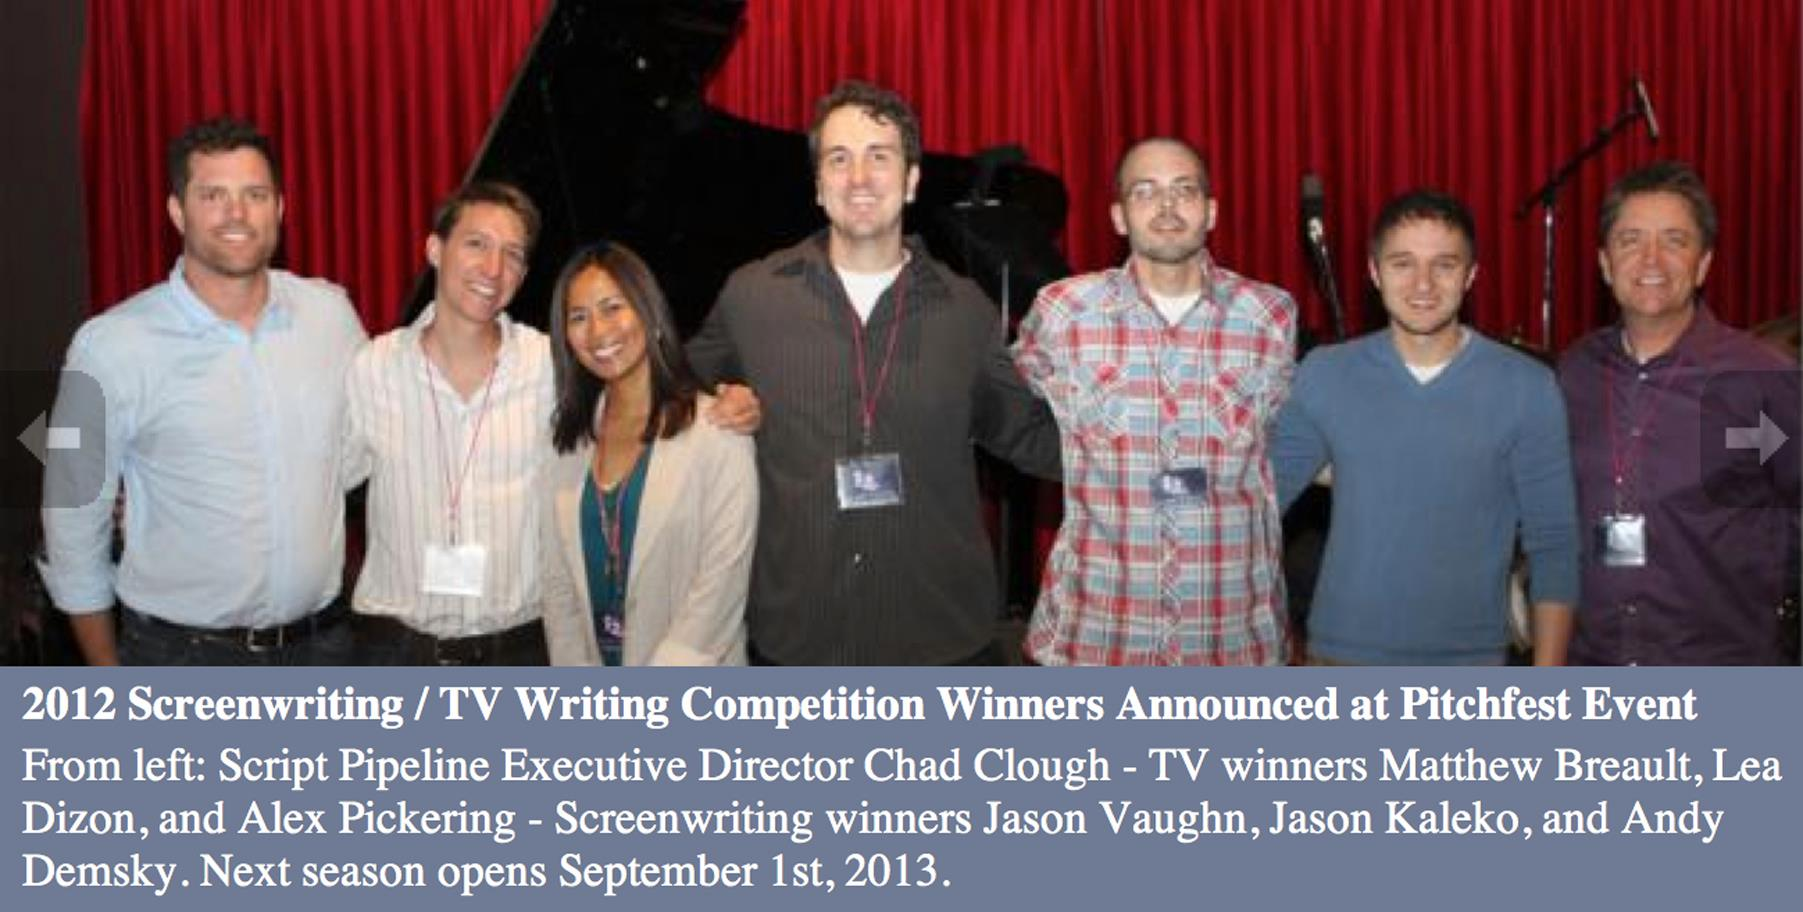 Script_Pipeline_TV_Competition_Winners_Alex_George_Pickering_Matthew_Breault_Lea_W_Dizon